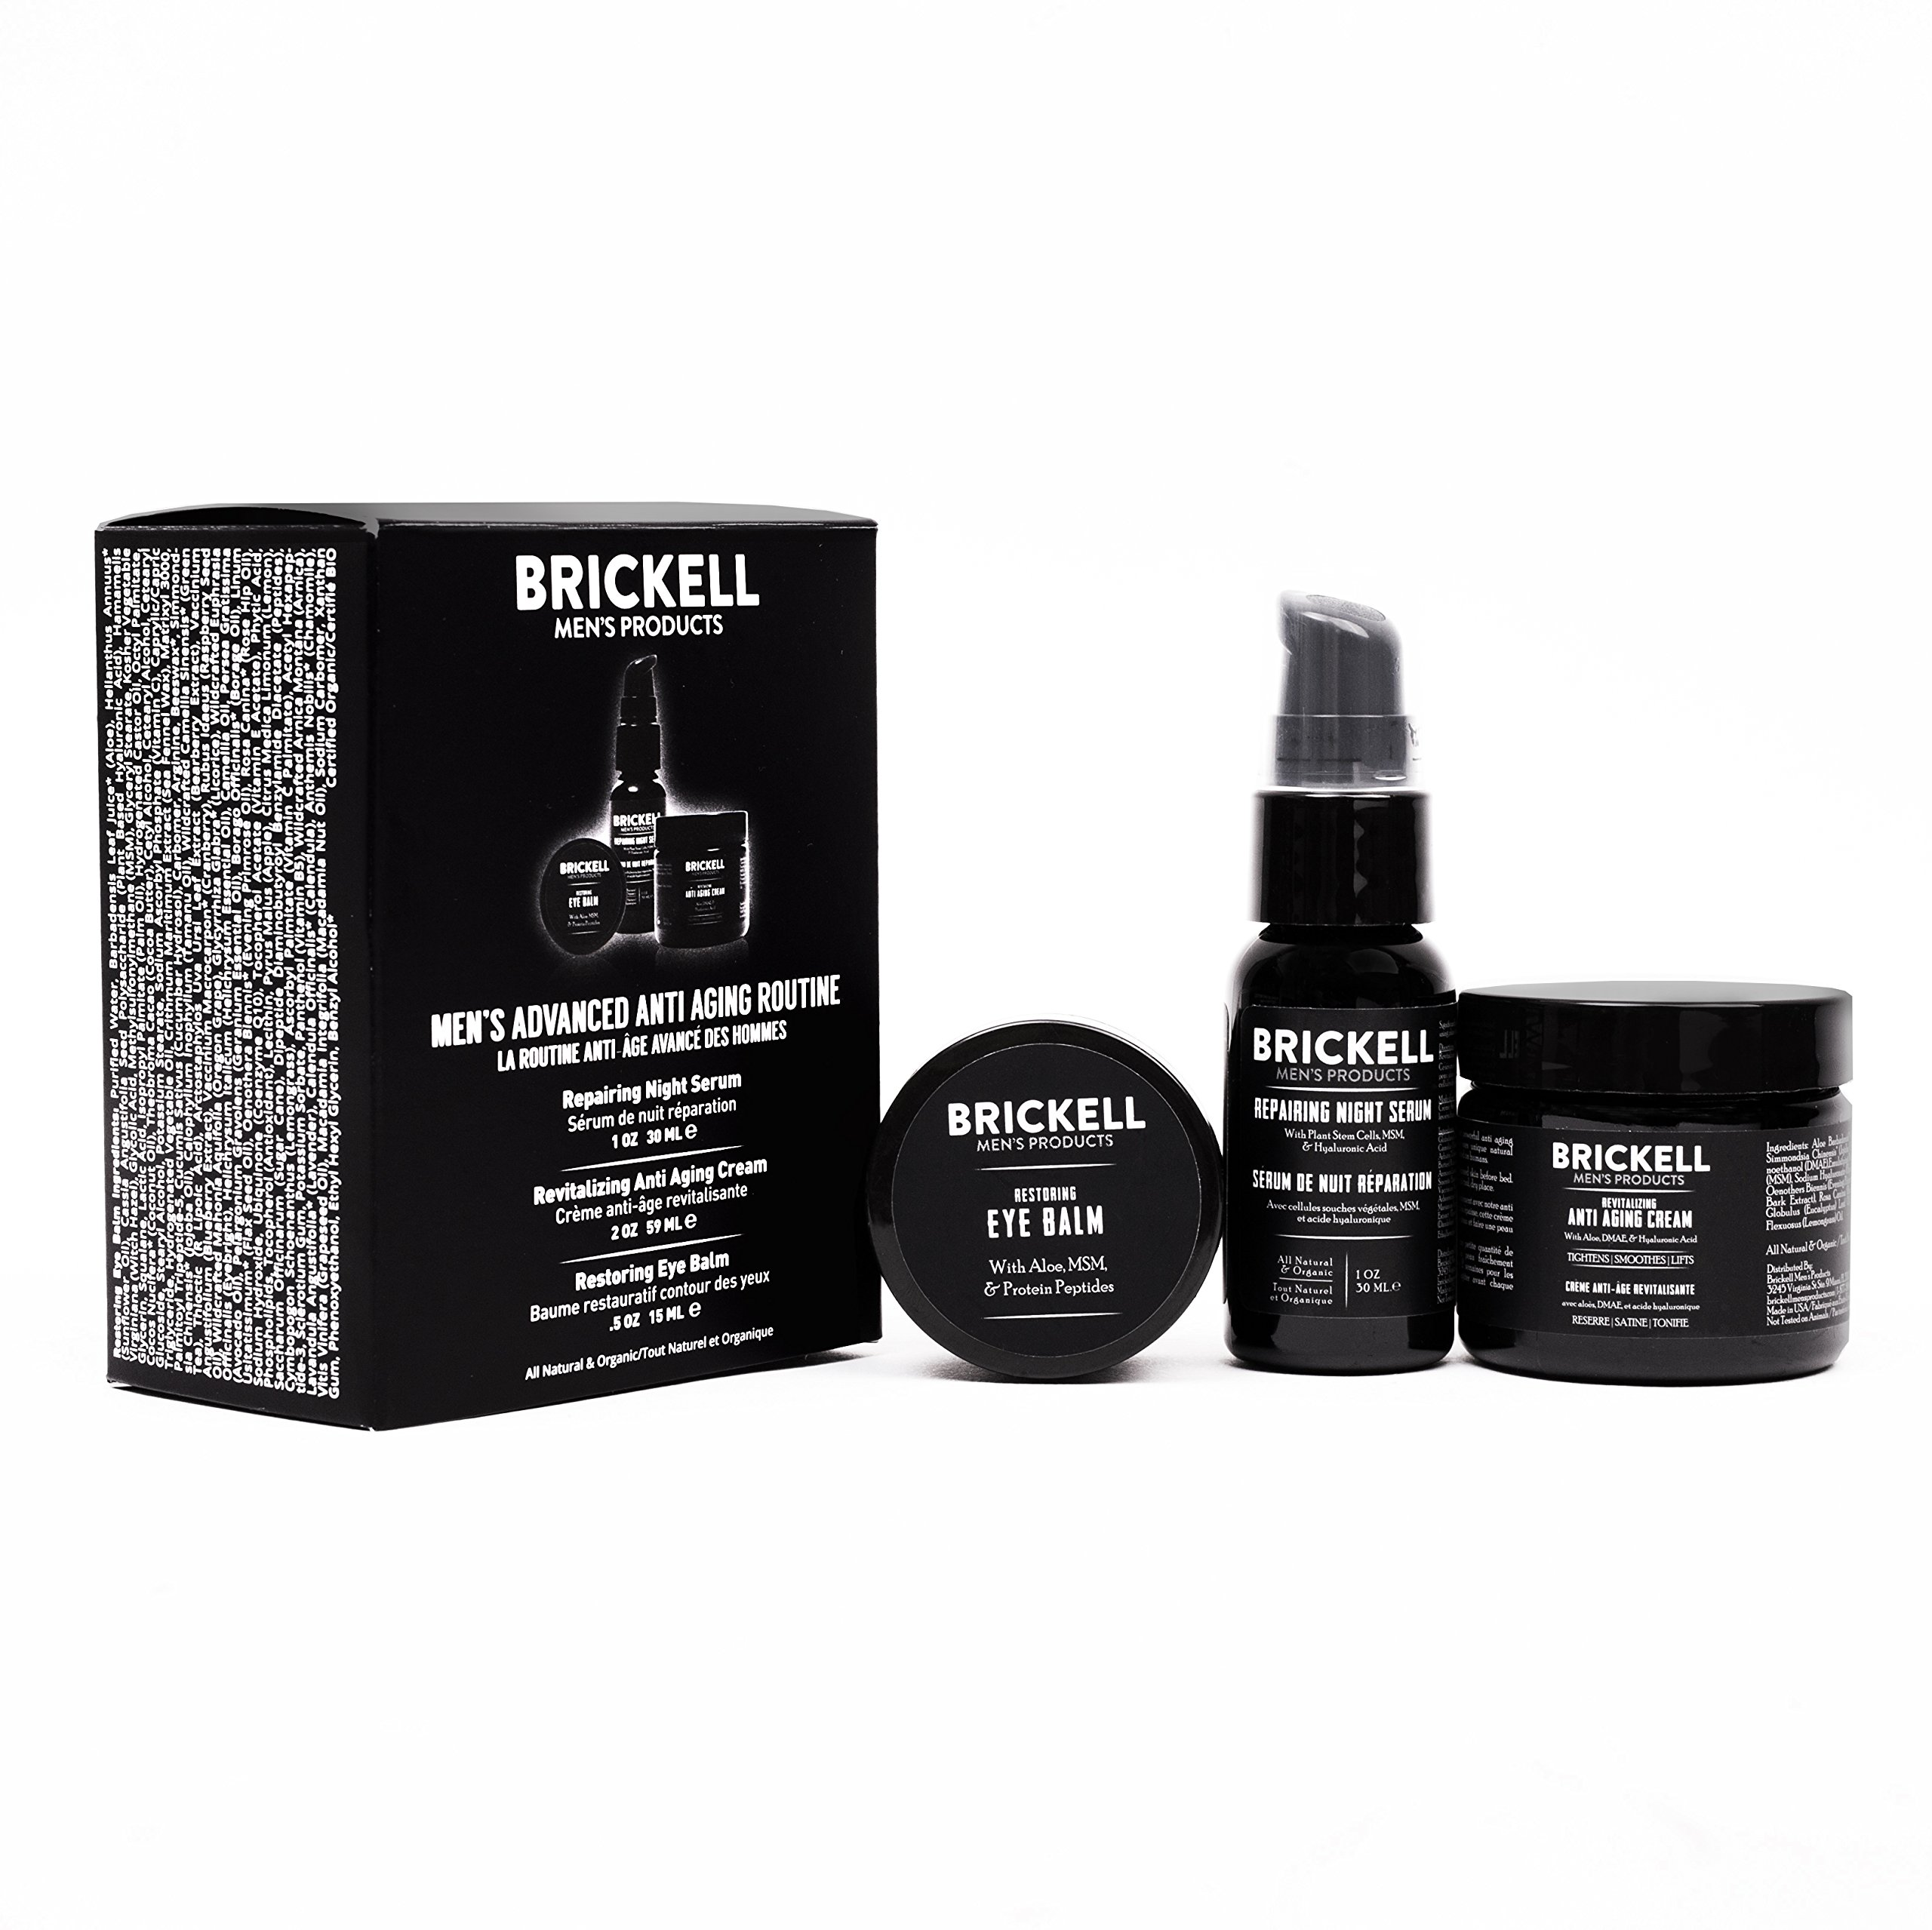 Brickell Men's Advanced Anti-Aging Routine, Night Face Cream, Vitamin C Facial Serum and Eye Cream, Natural and Organic, Scented by Brickell Men's Products